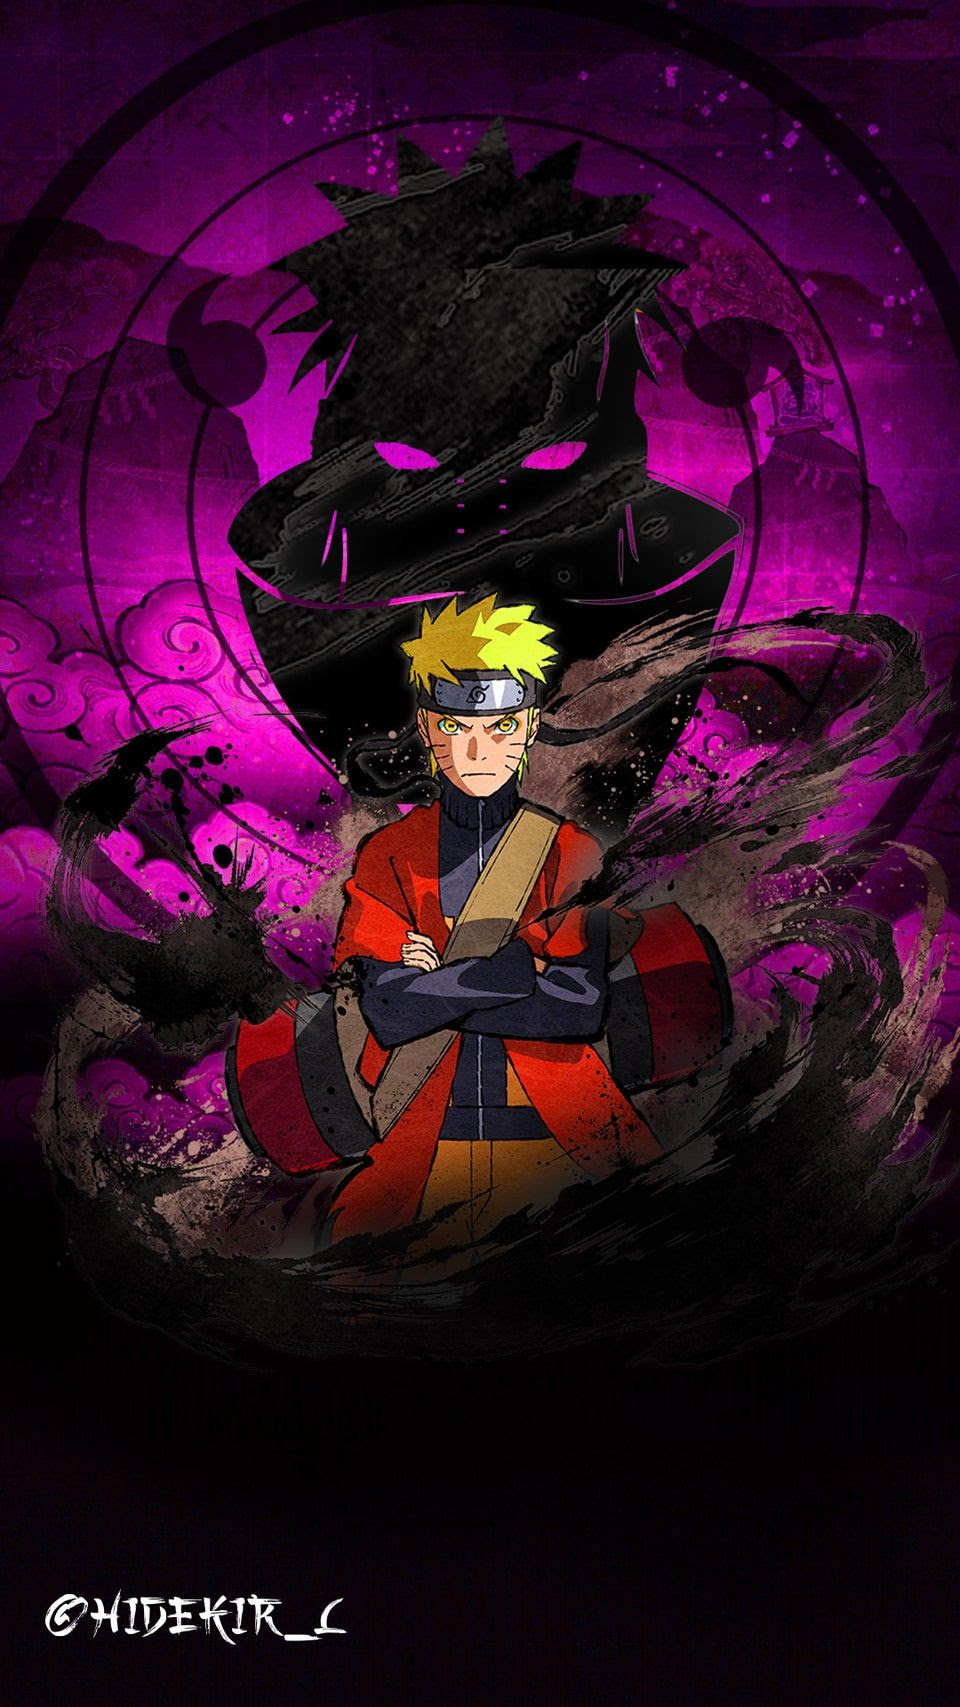 Naruto Wallpapers Top 75 Best Naruto Backgrounds Download